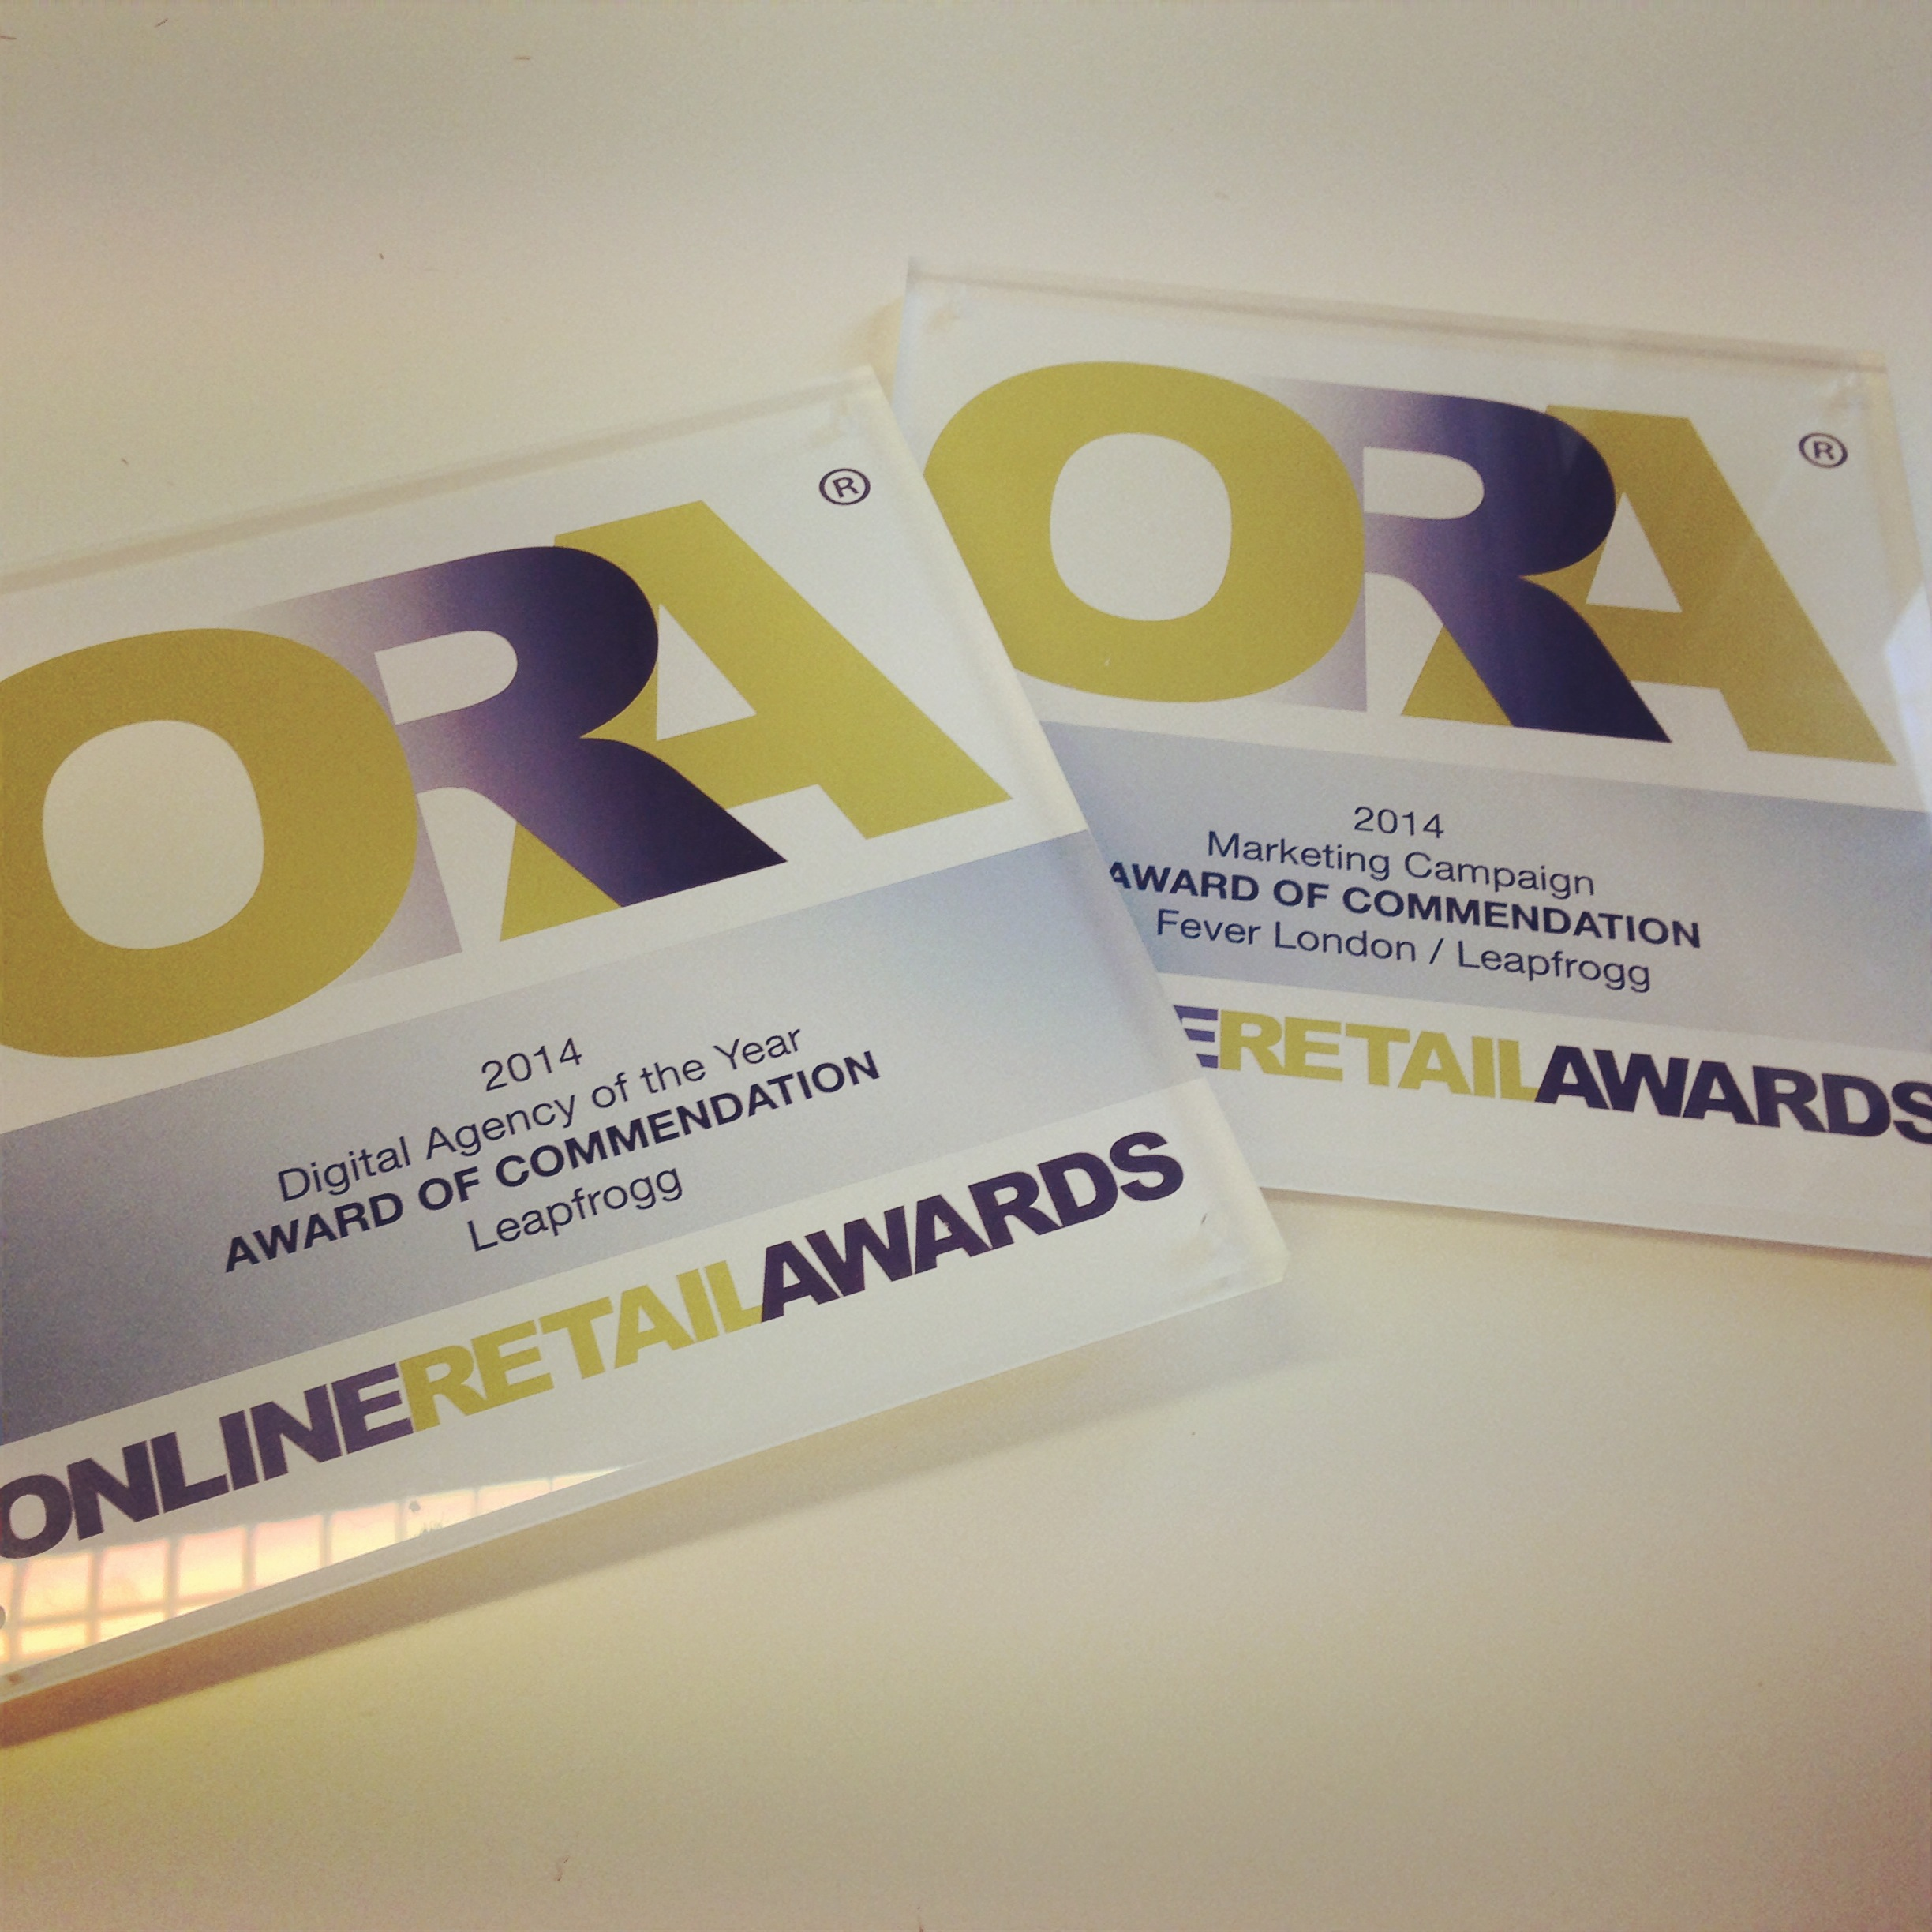 Online Retail Awards